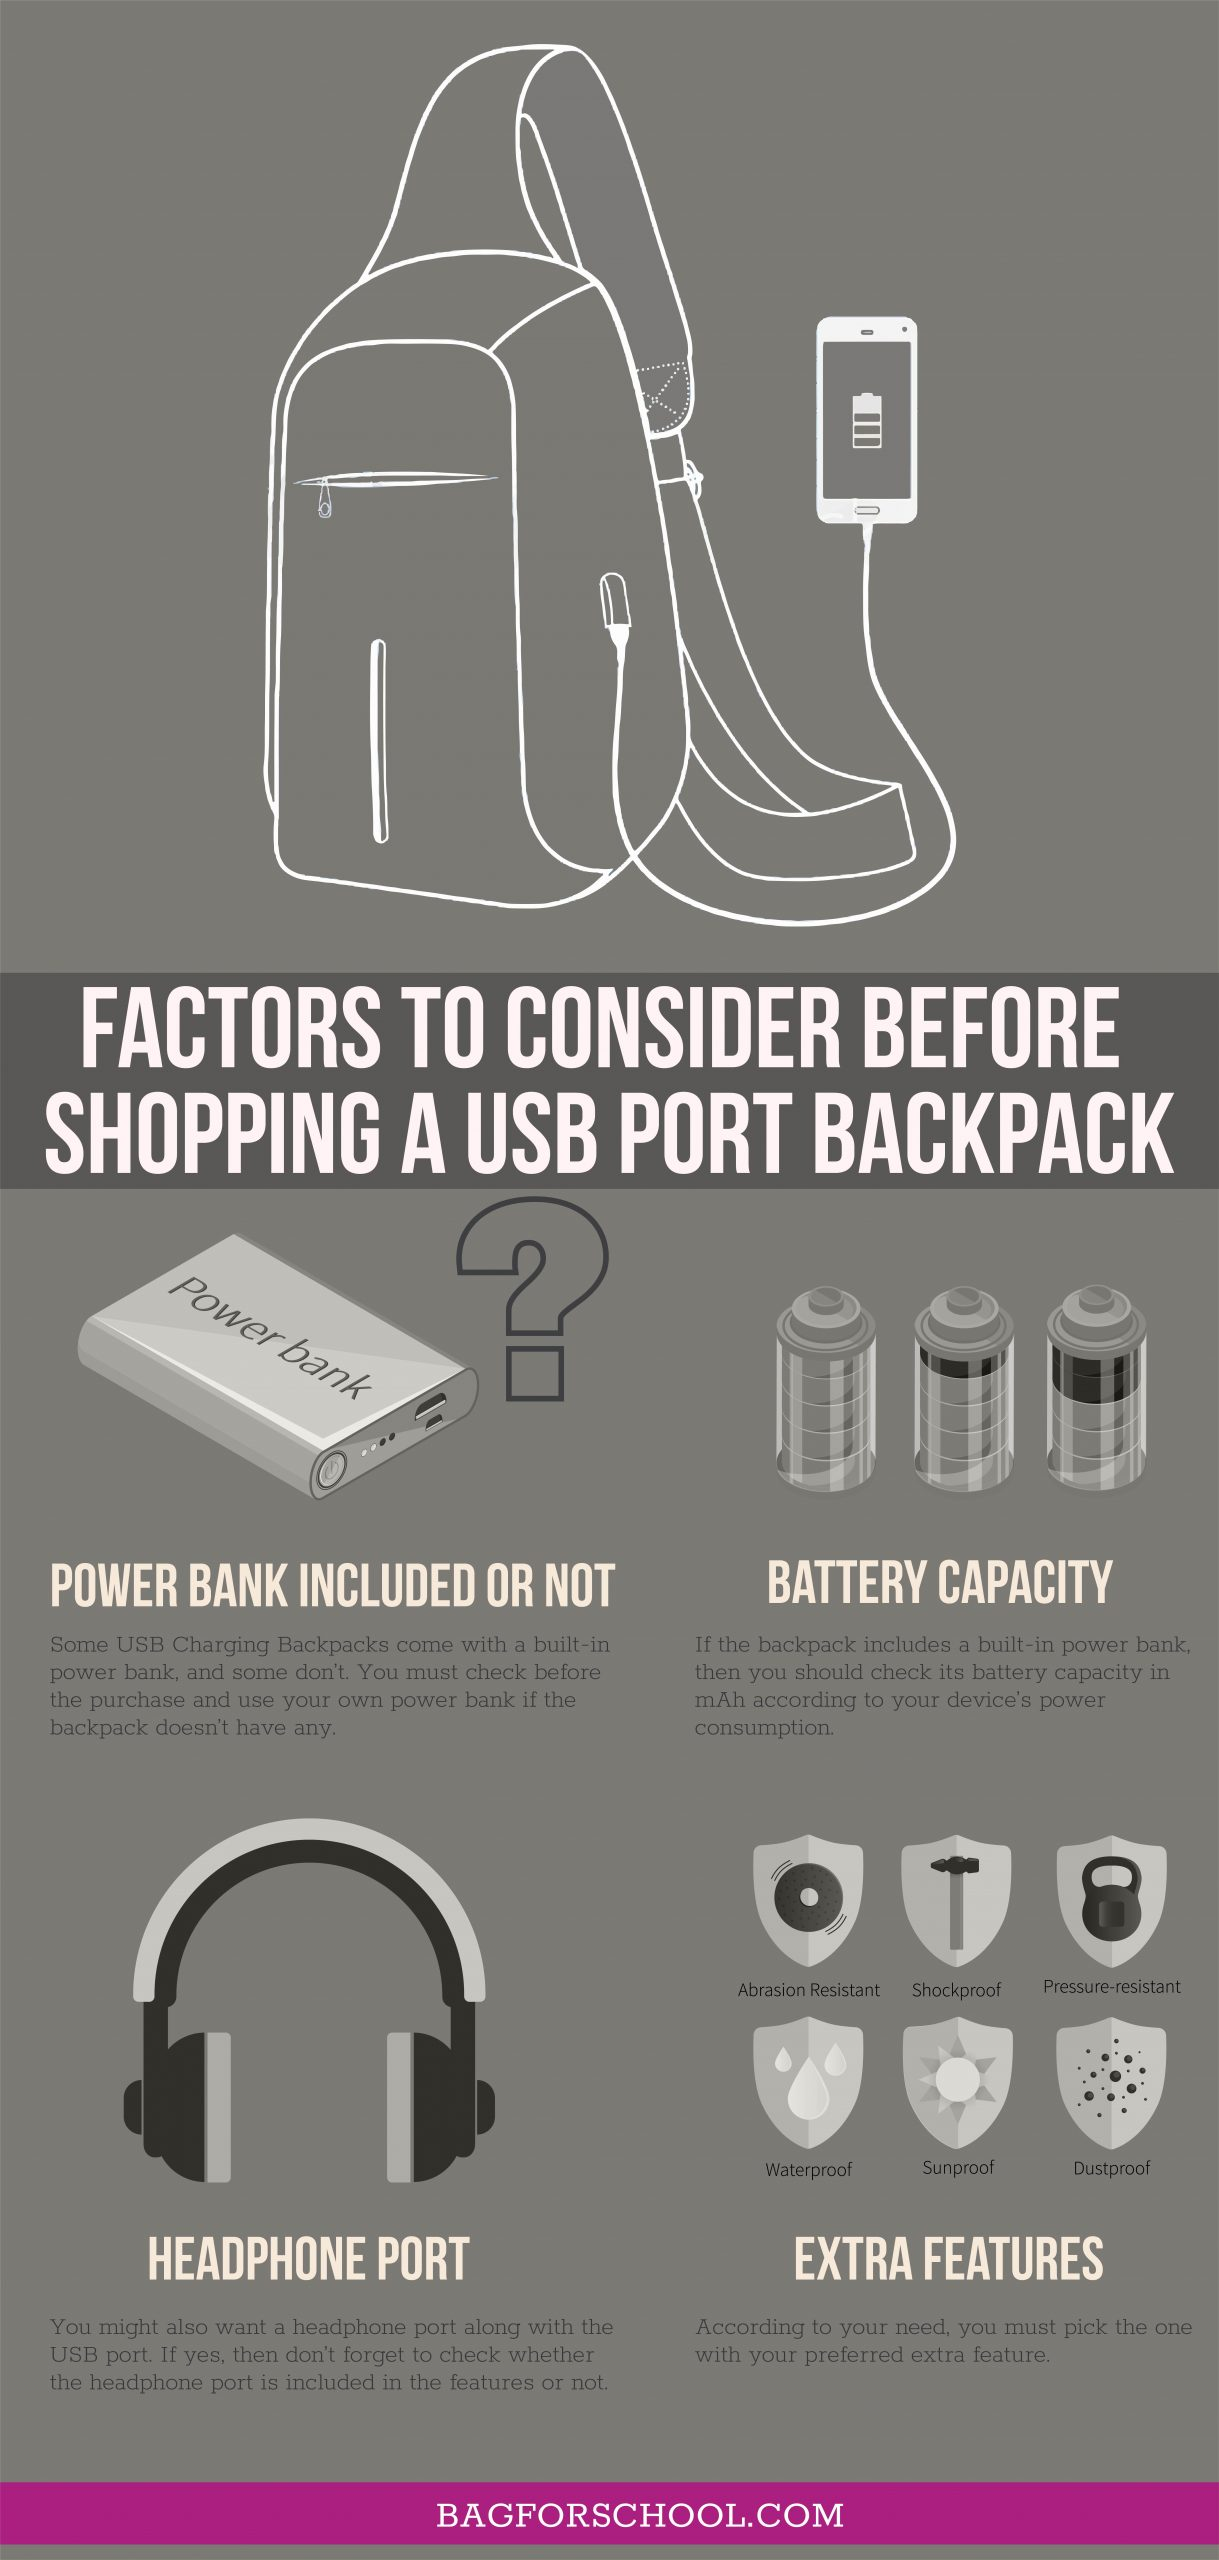 Factors to Consider Before-Shopping a USB Port Backpack